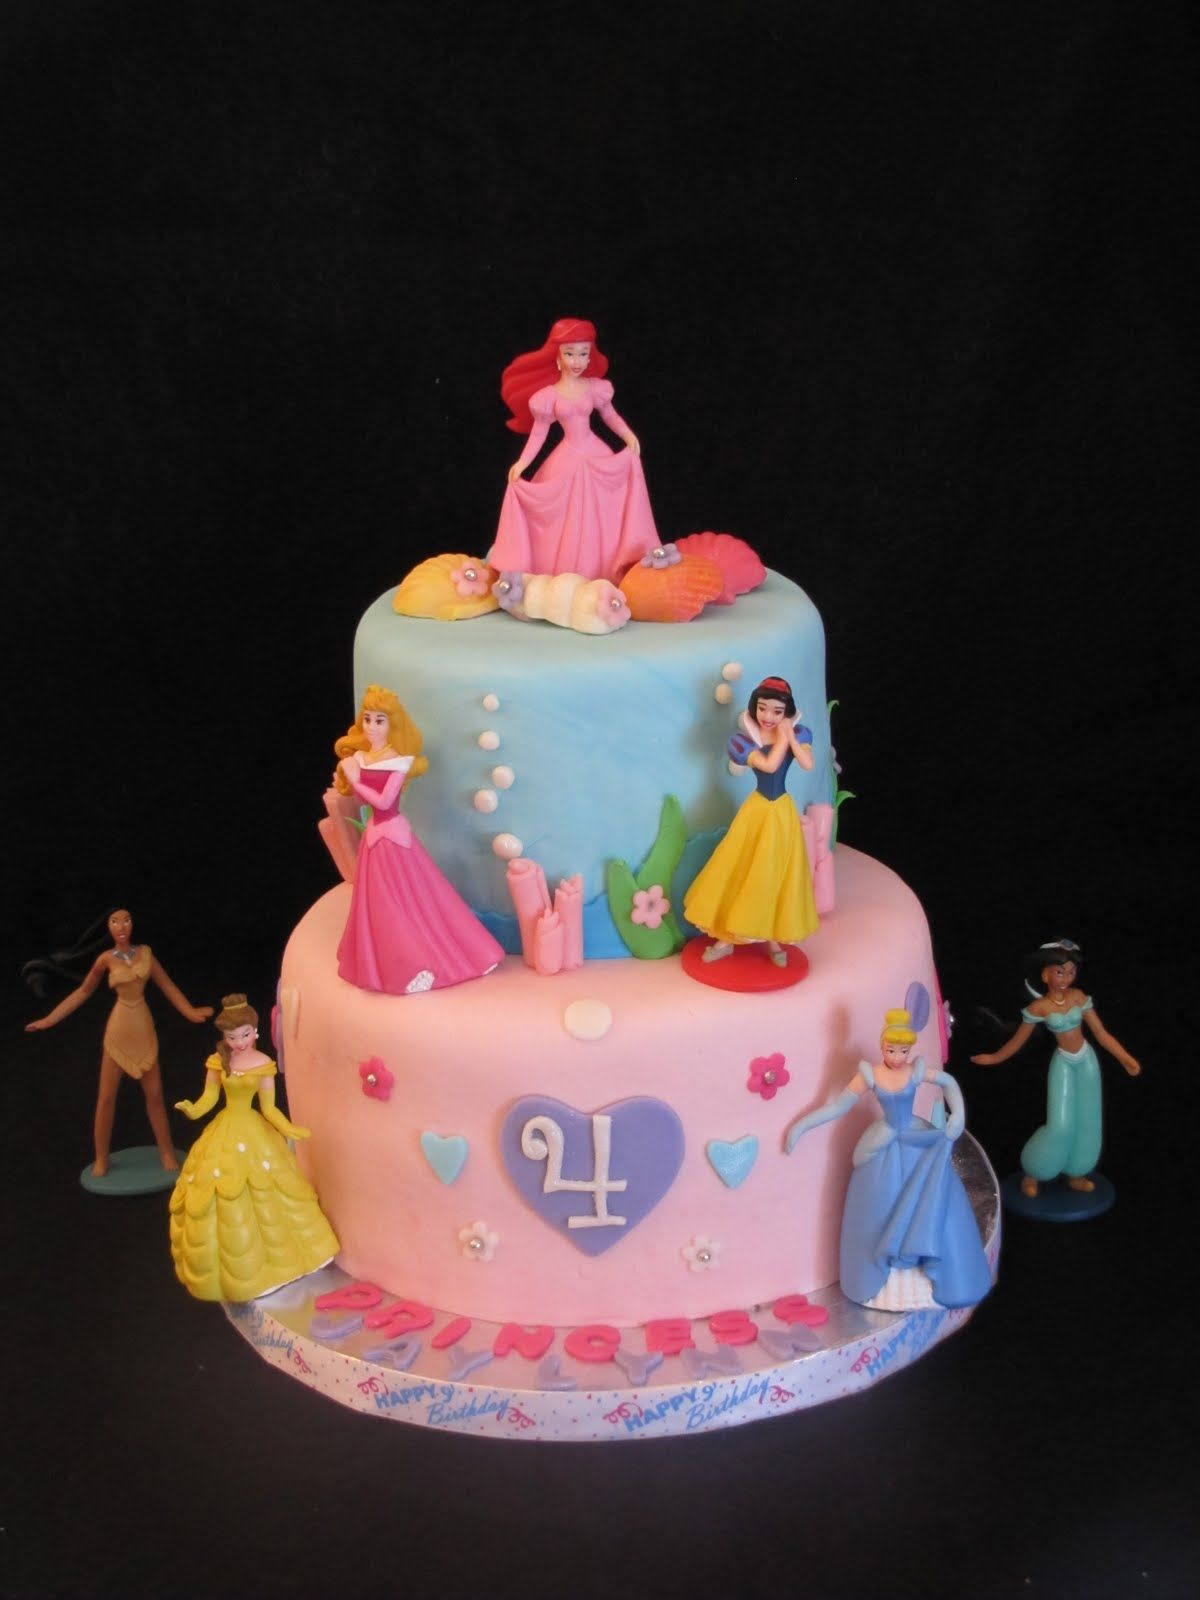 Disney Princess Cake Can We Do This Ashley Phipps I Can Learn